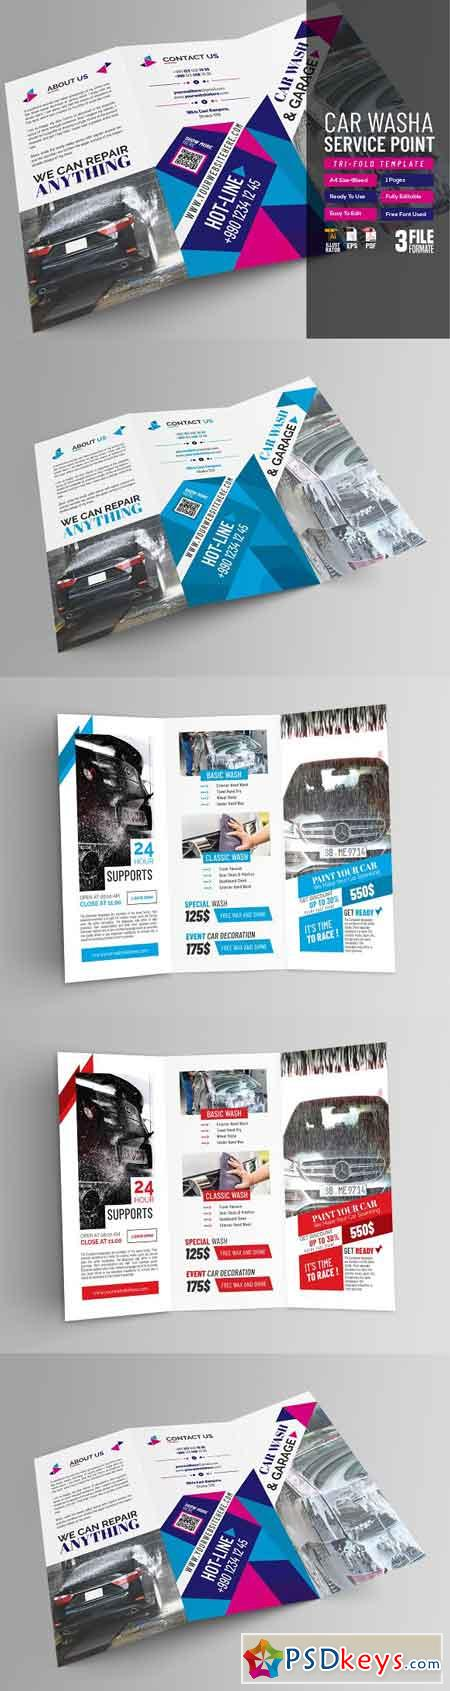 Car Wash Service Tri Fold Brochure 2768480